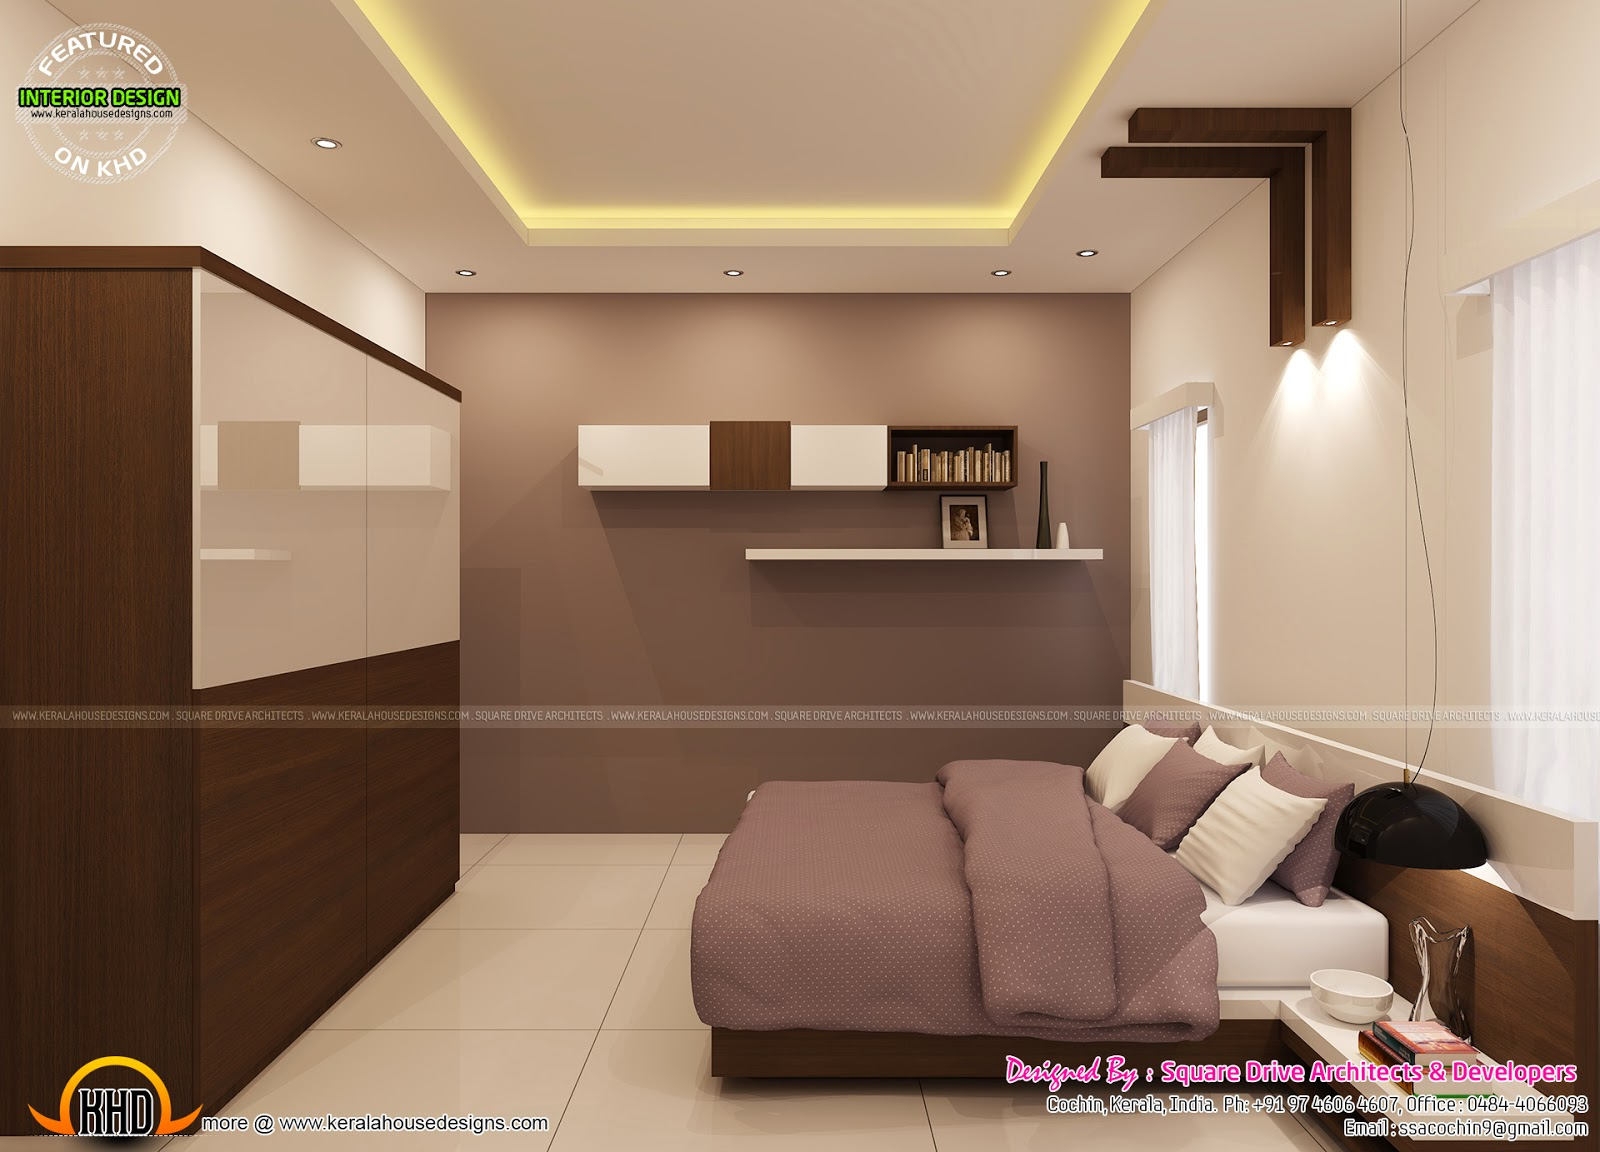 Bedroom interior decoration kerala home design and floor Bedroom design